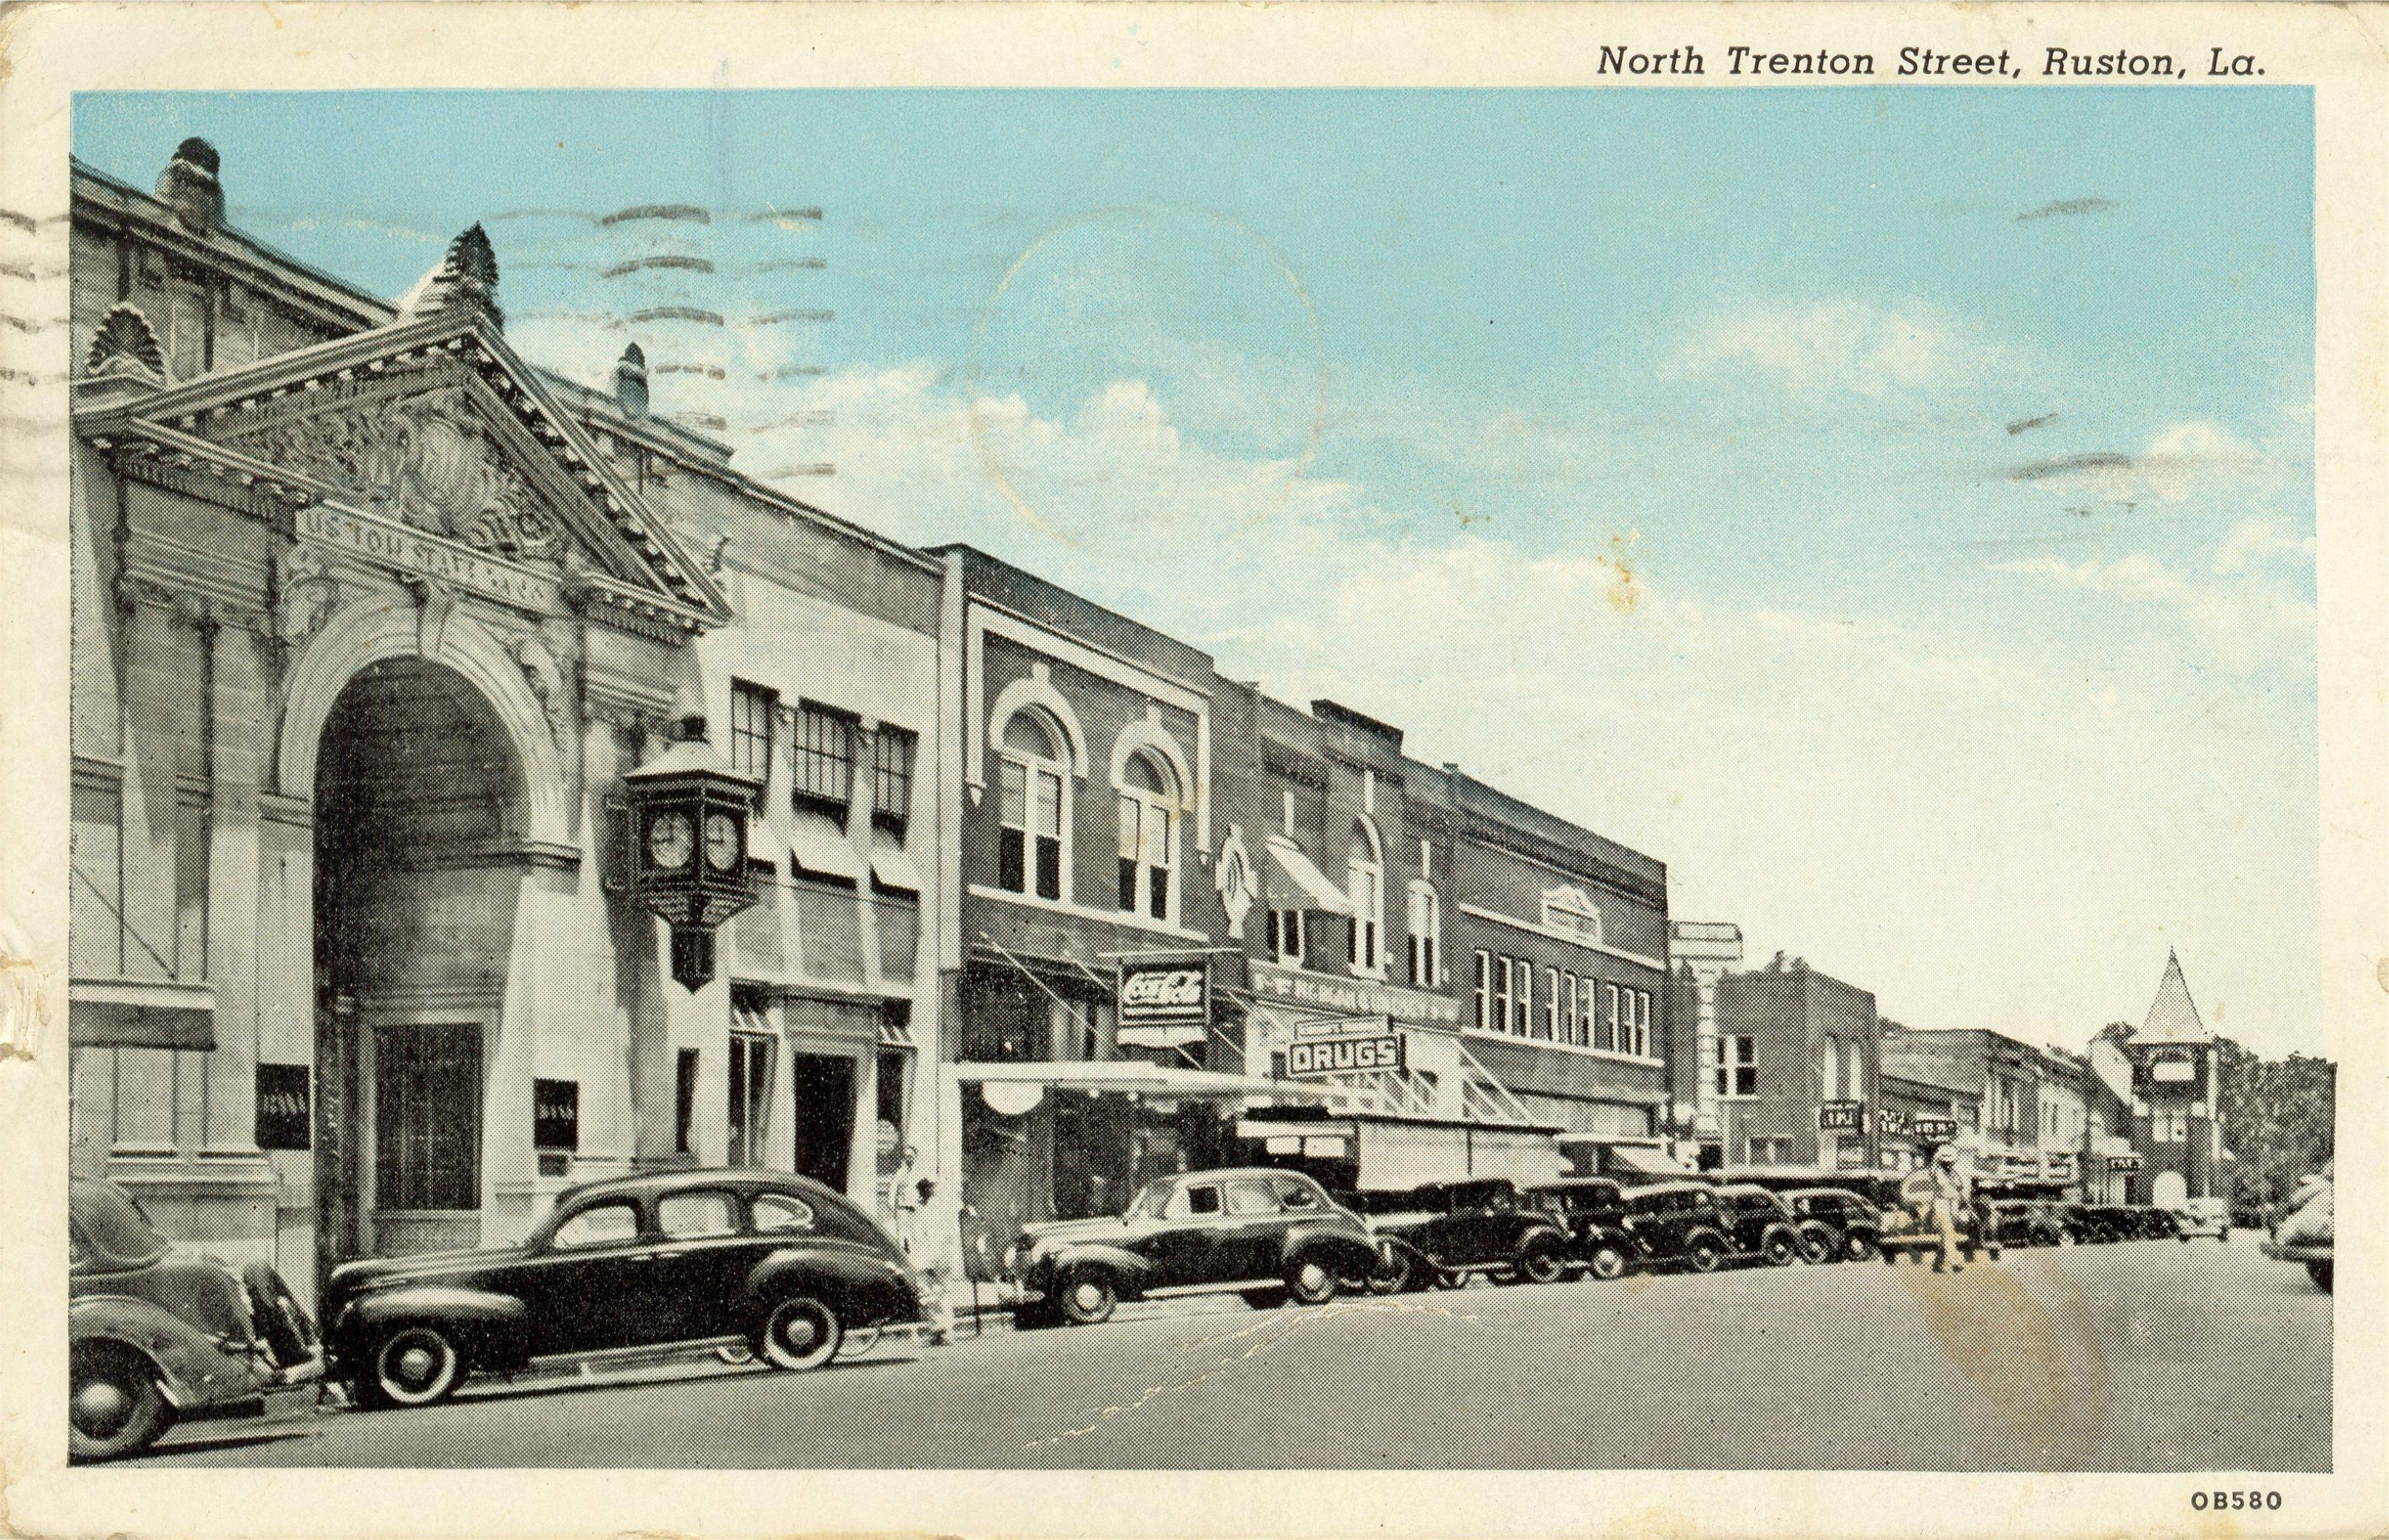 Post Card of Ruston State Bank & N. Trenton Street